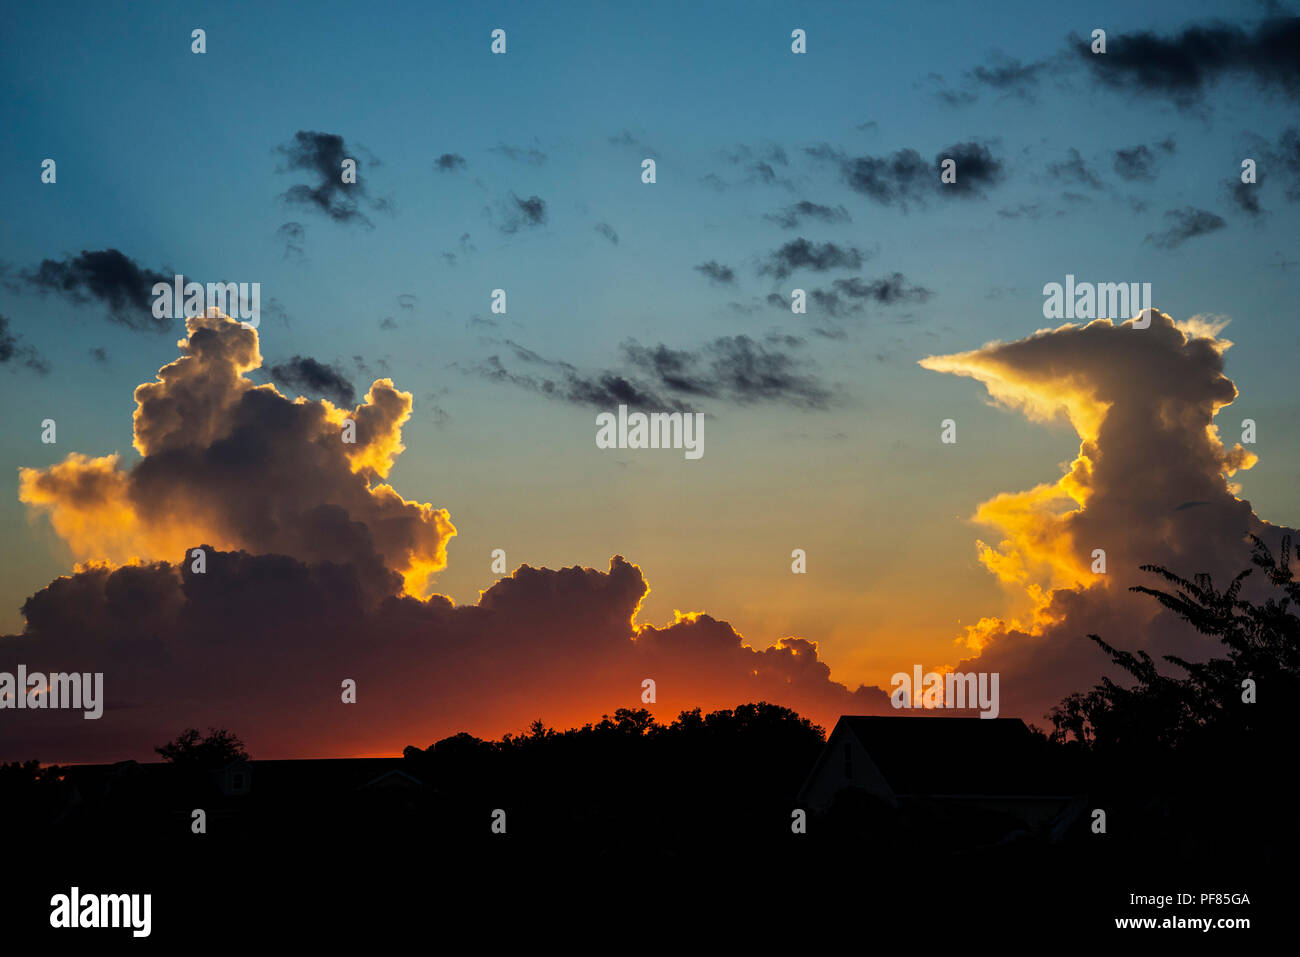 Sonnenuntergang Wolken in North Central Florida. Stockbild